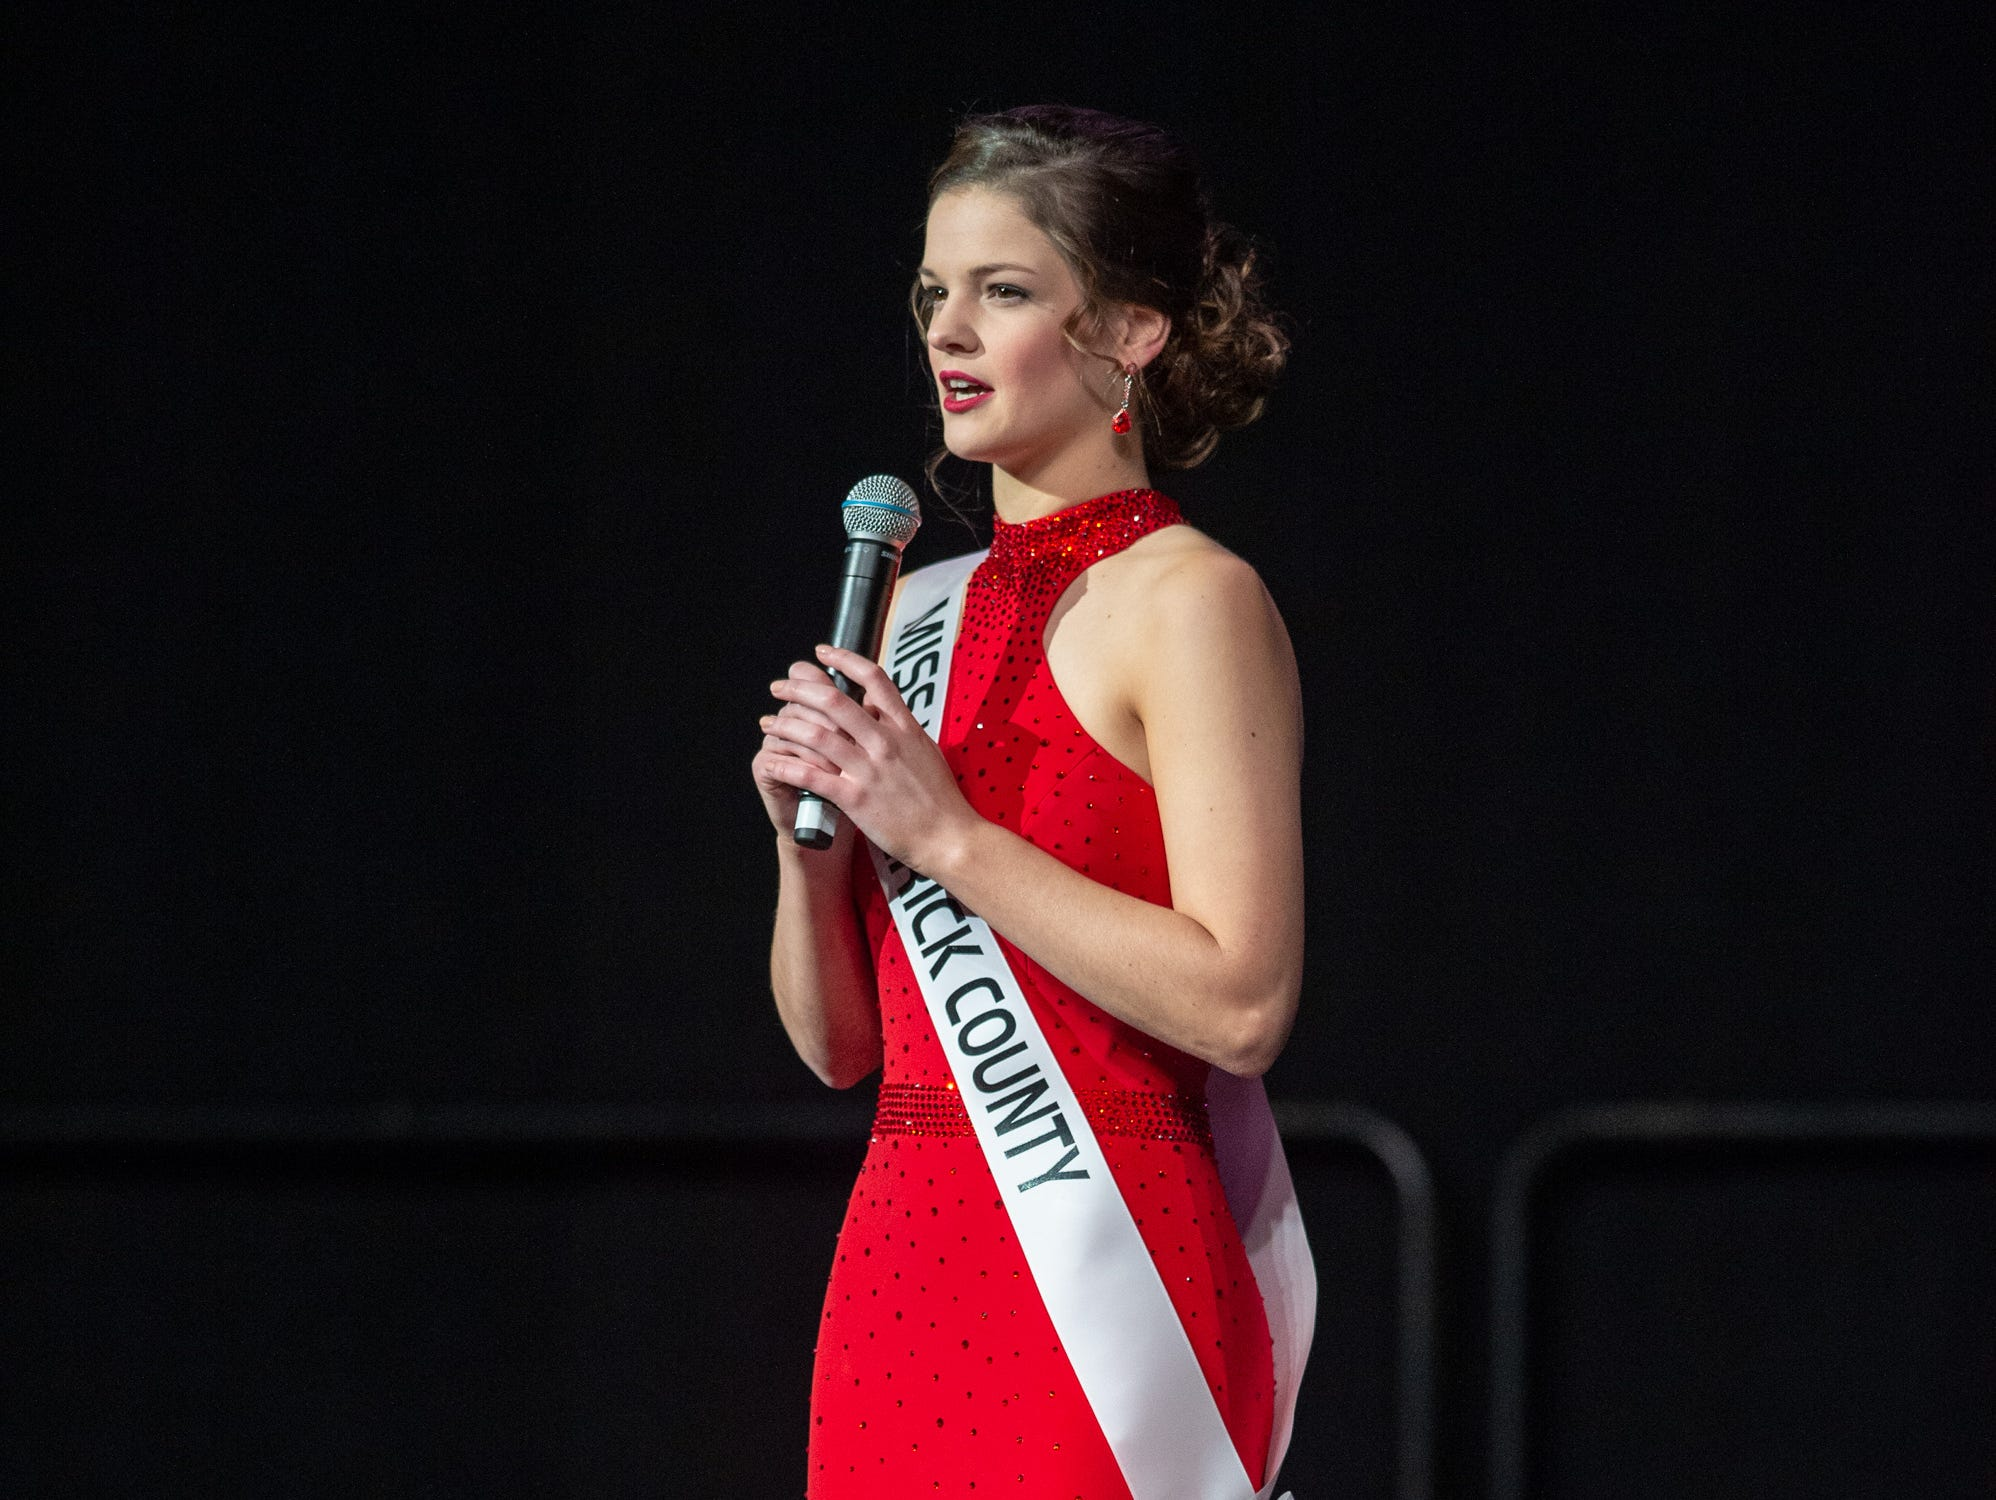 """Miss Warrick County, Adrienne Rudolph, was given the word """"grace"""" to use in a spontaneous response during the 61st Indiana State Fair Queen Pageant at the Indiana State Fairgrounds in Indianapolis on Sunday, Jan. 6, 2019."""